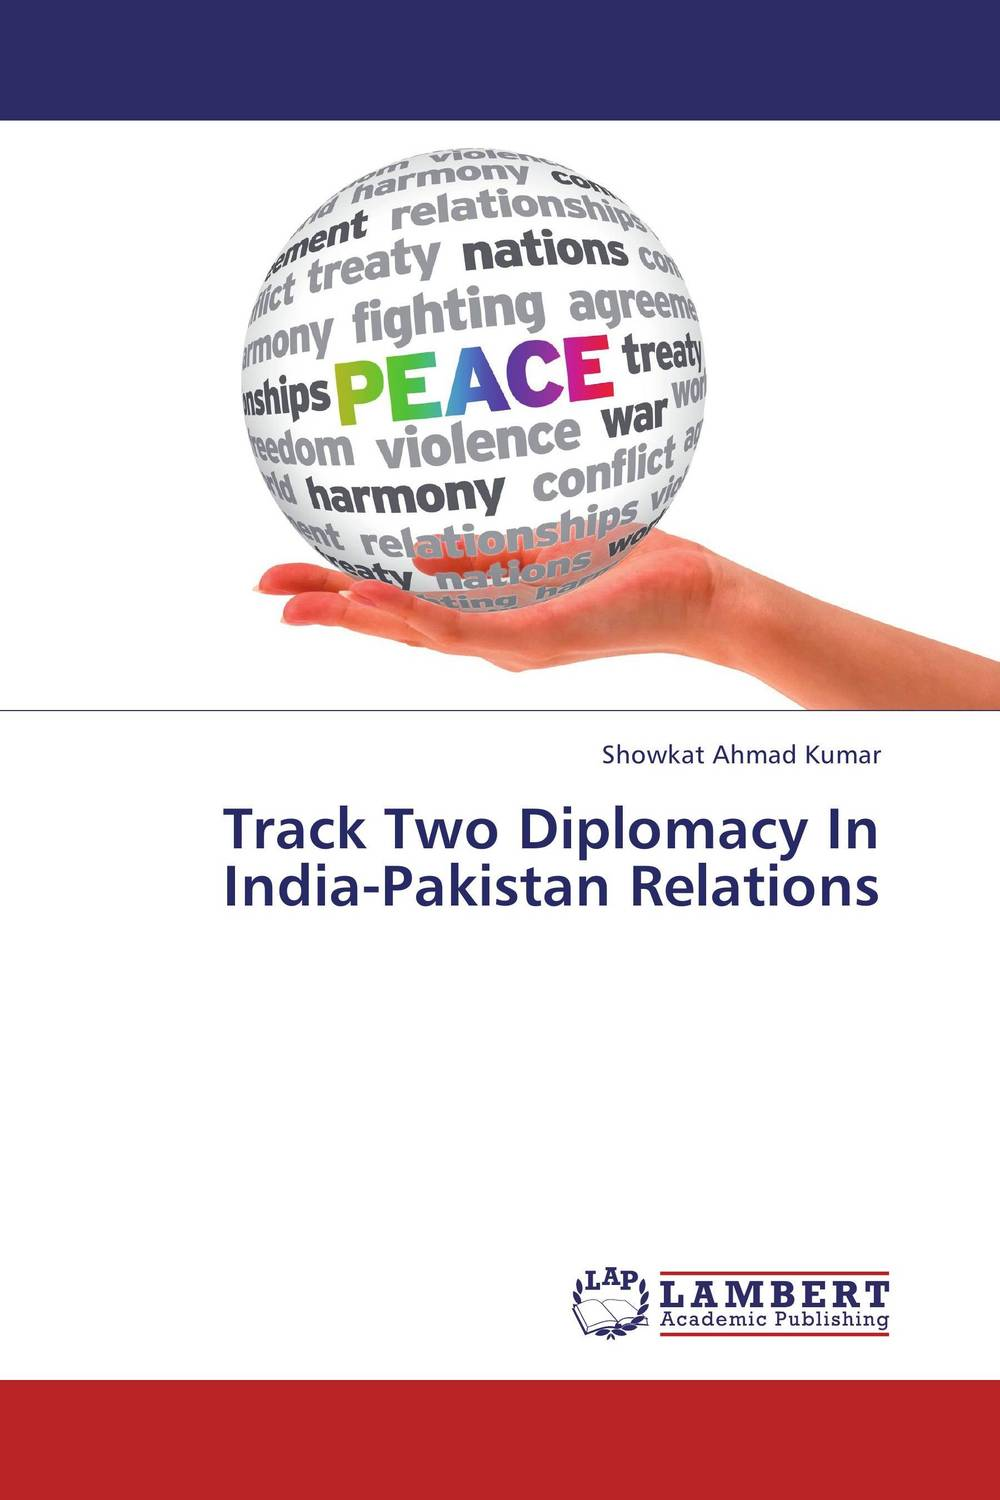 Track Two Diplomacy In India-Pakistan Relations china india relations and implications for pakistan